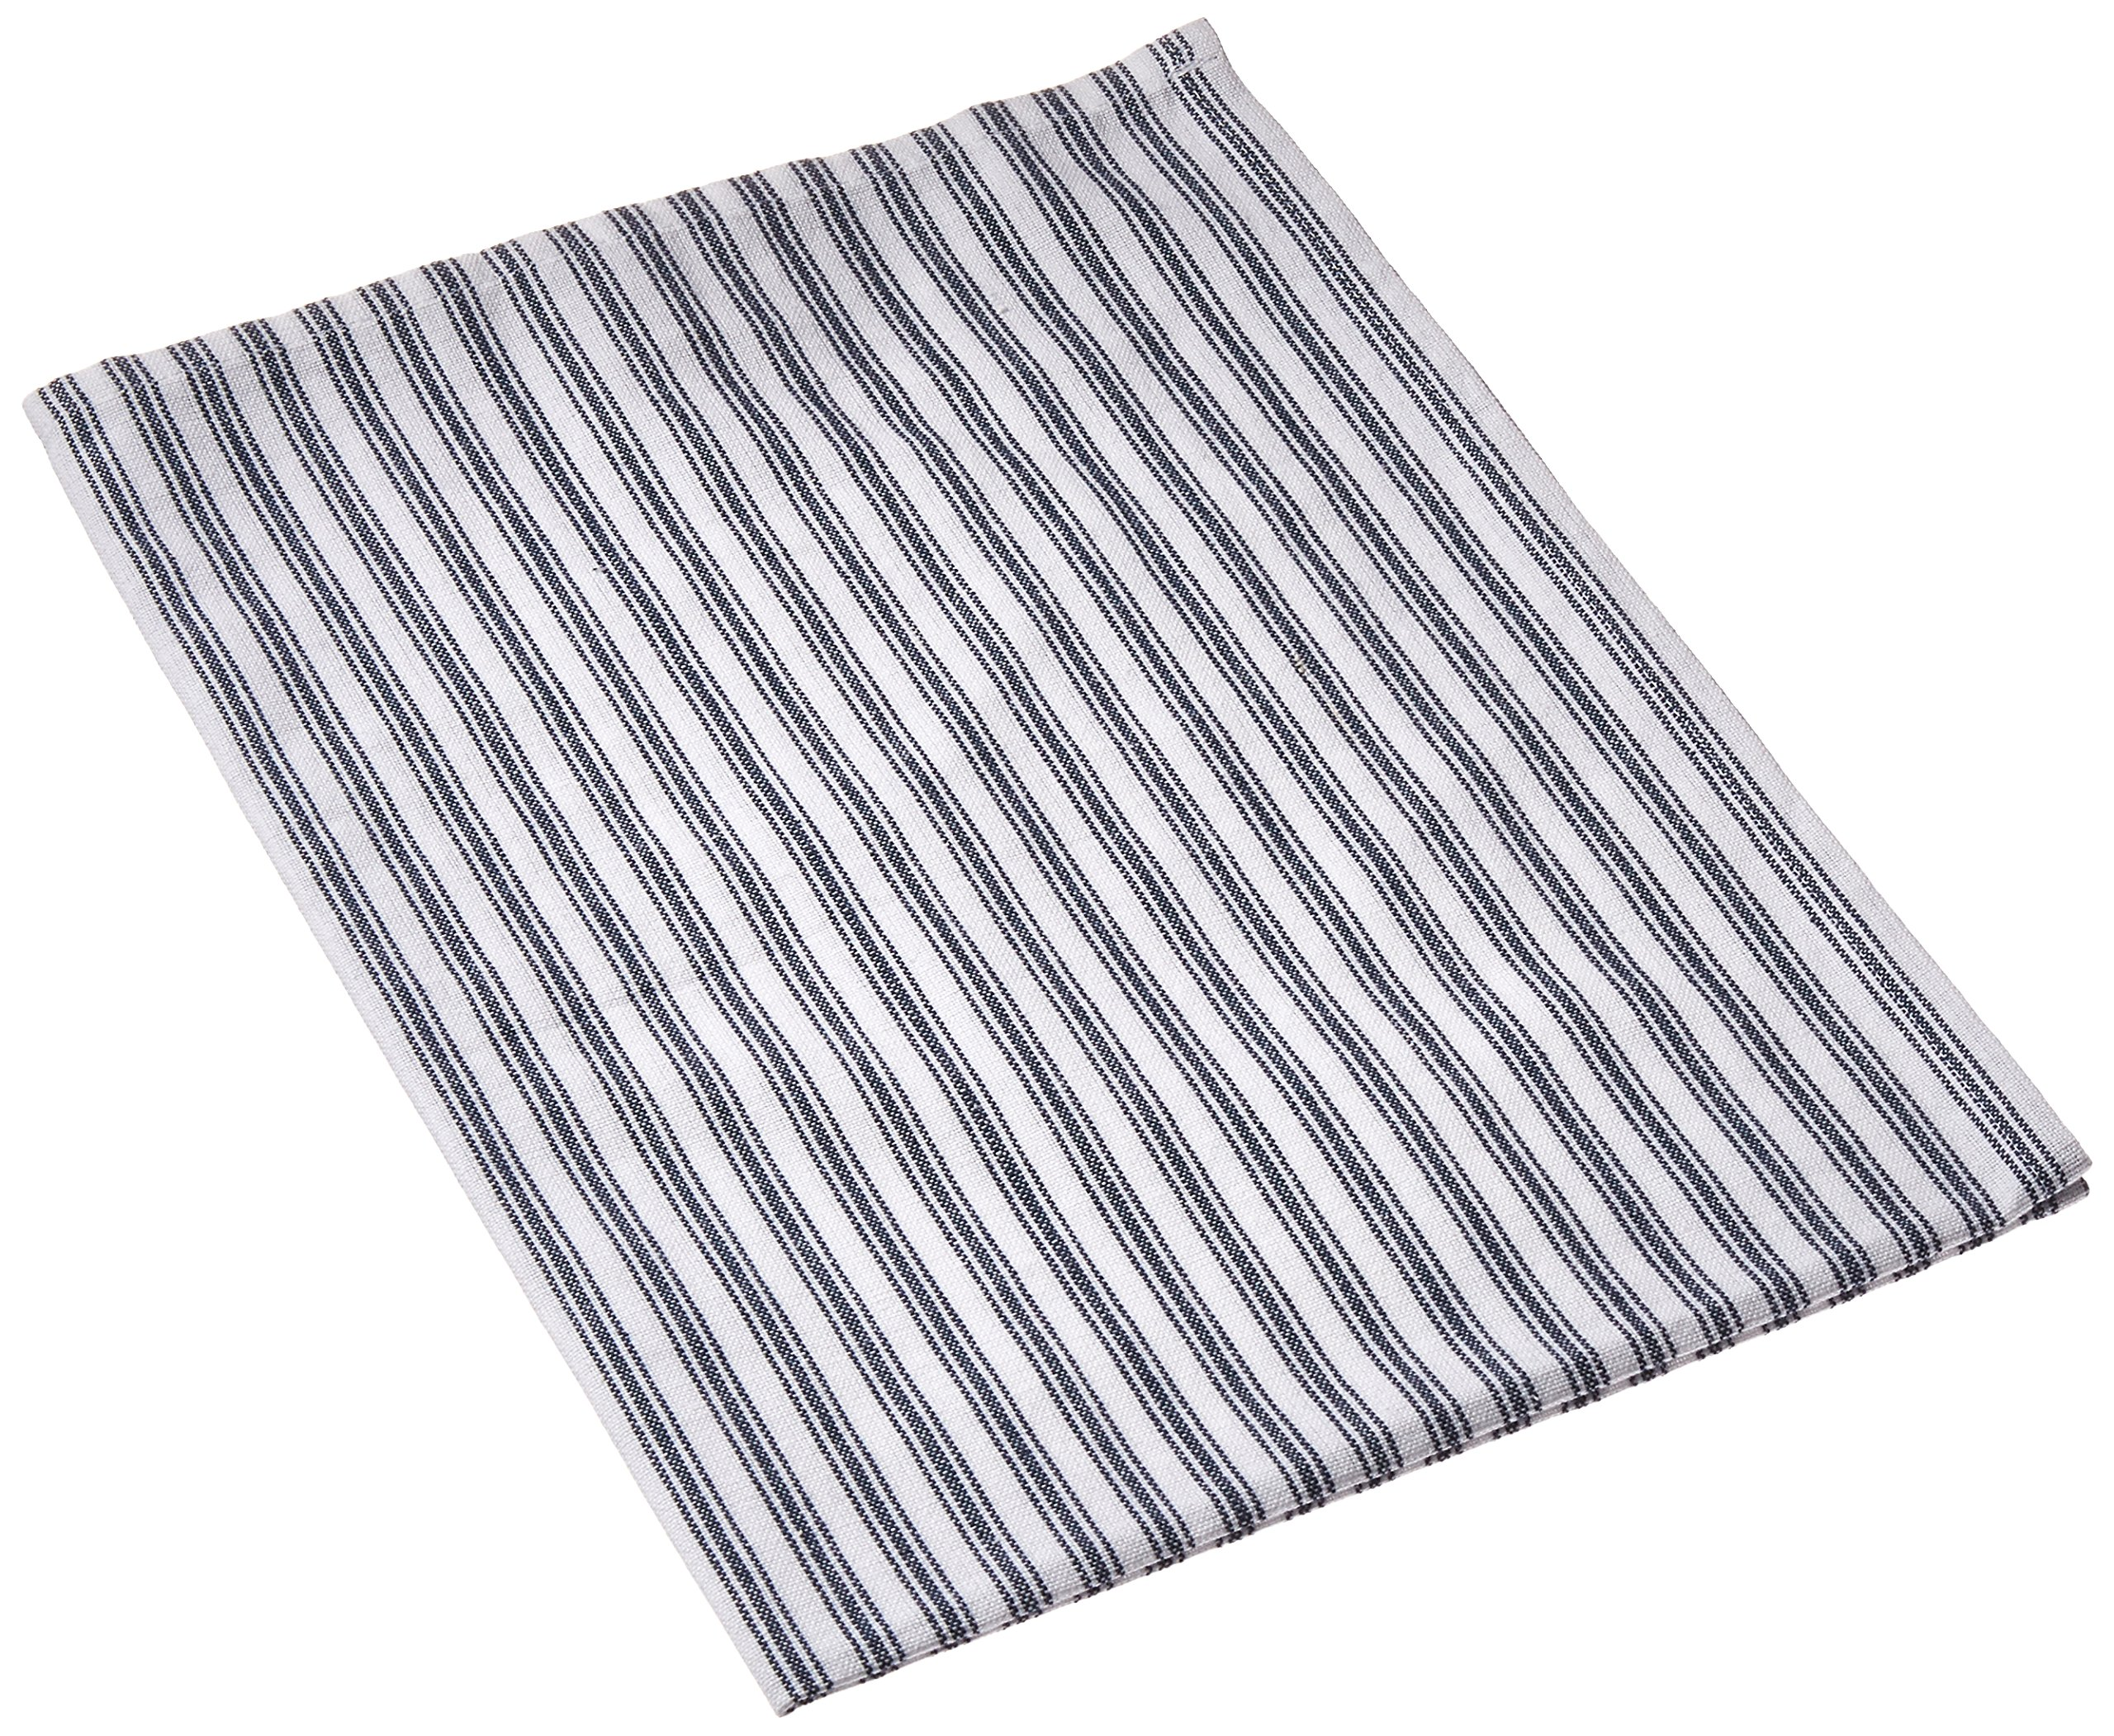 Dunroven House DRHK311.N Ticking Navy/White Blue Towel, 20'' by 28''